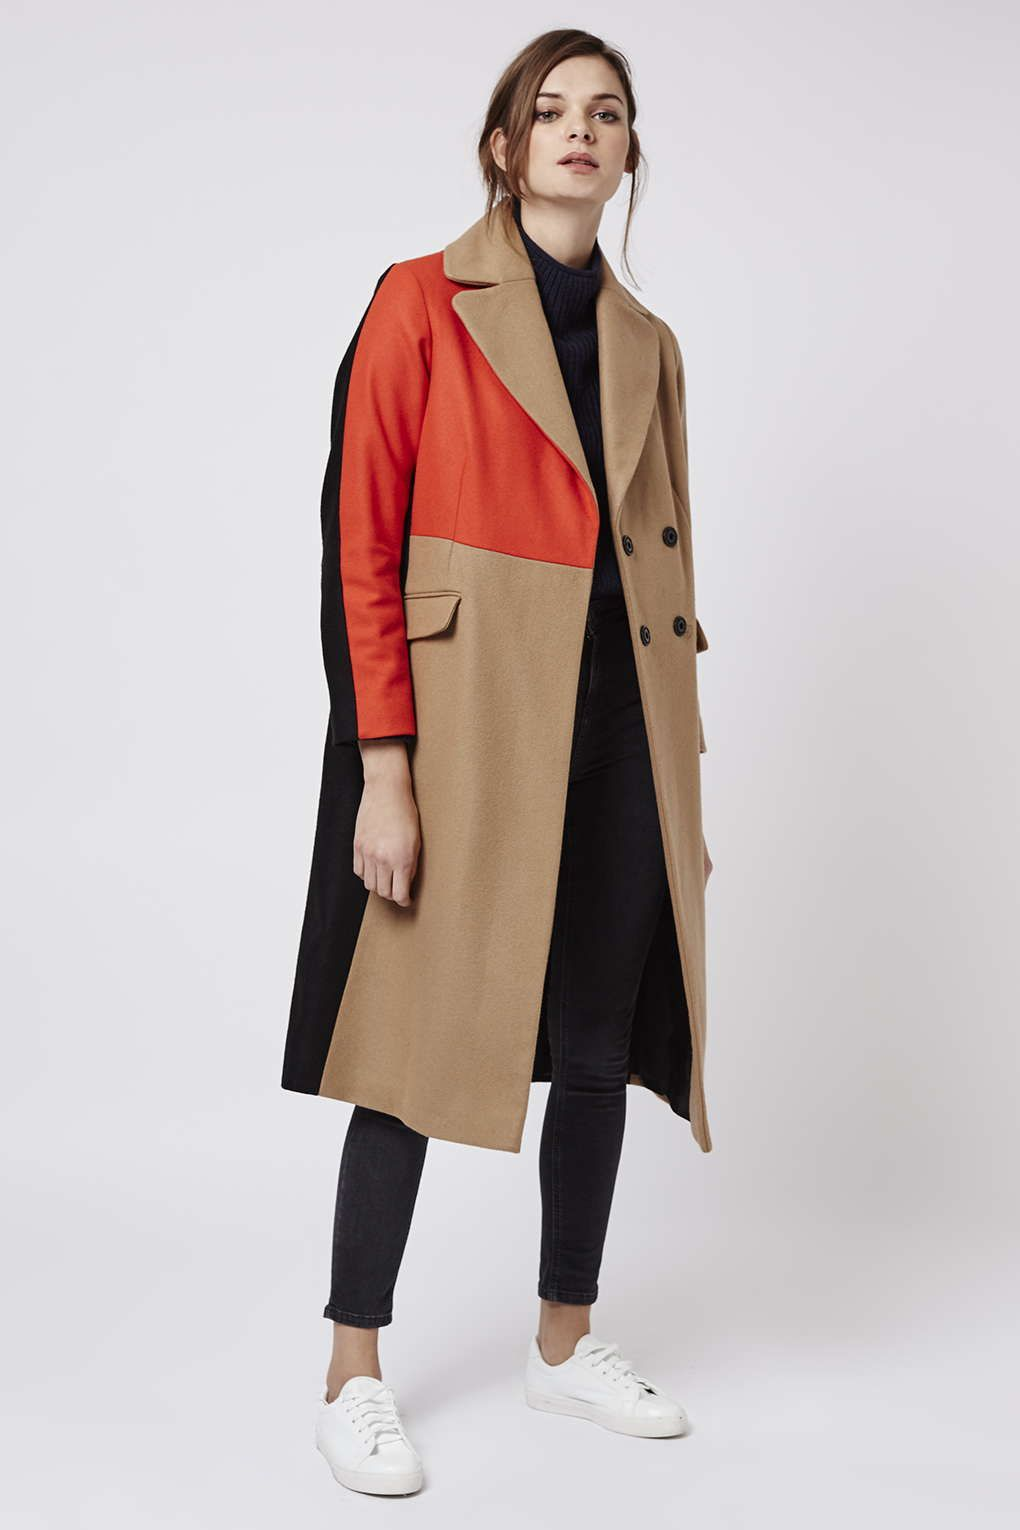 916f1a57c82 Colour Block Wool Blend Coat - Topshop